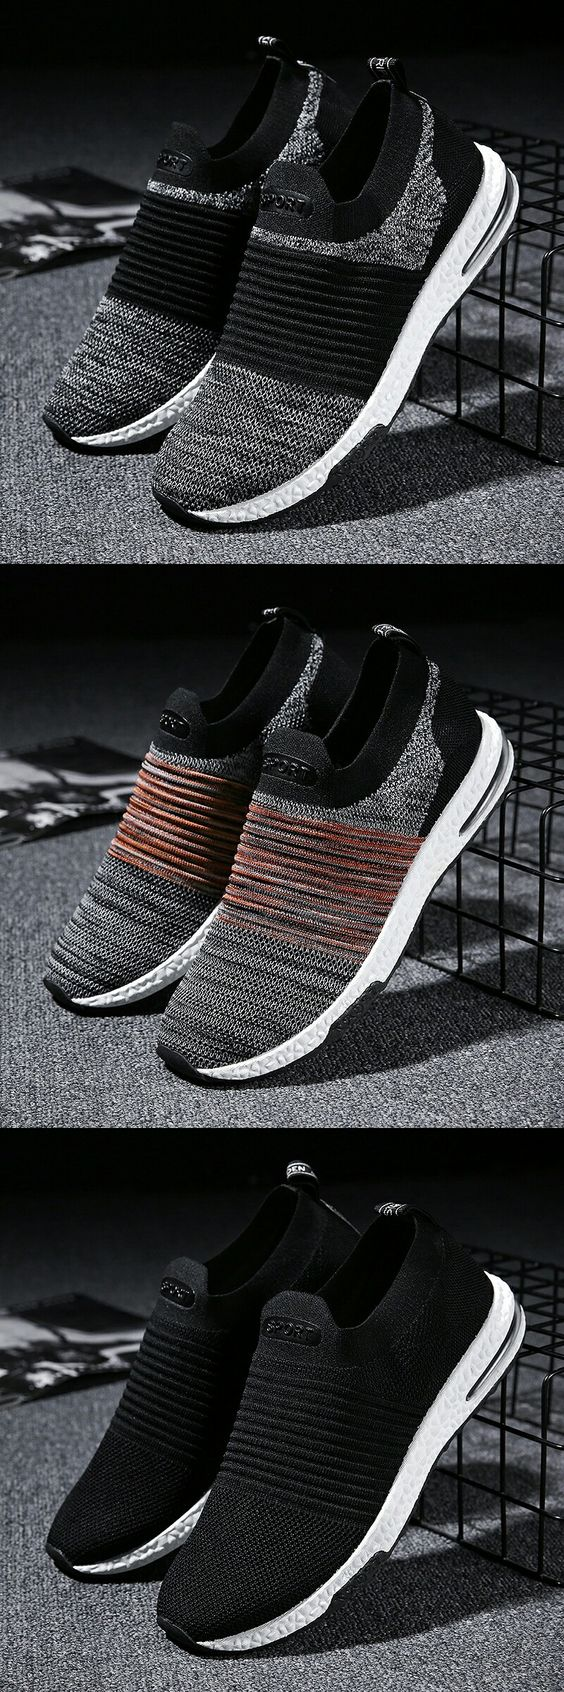 US $19.87 <Click to buy> Prikol Swag Style Men Sport Shoes Spring Autumn Breathable Mesh Knitted Men Shoes Zapatillas Hombre Tennis Footwear Zapato